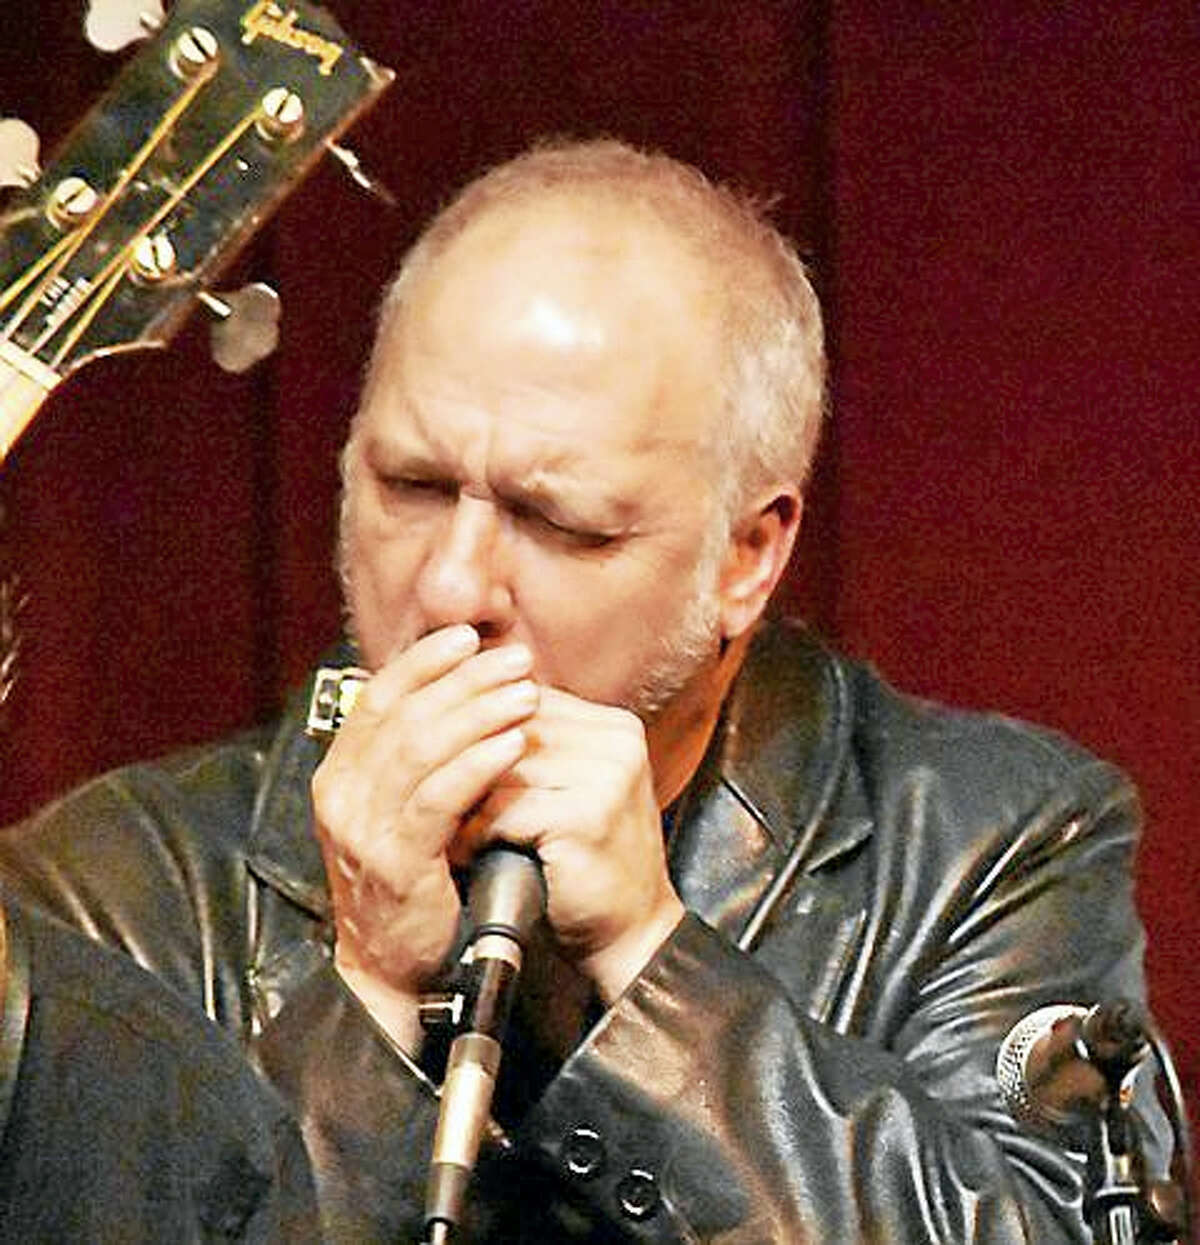 Don DeStefano leads Creamery Station, the band headlining the Locapalooza Festival in Bethany this weekend.